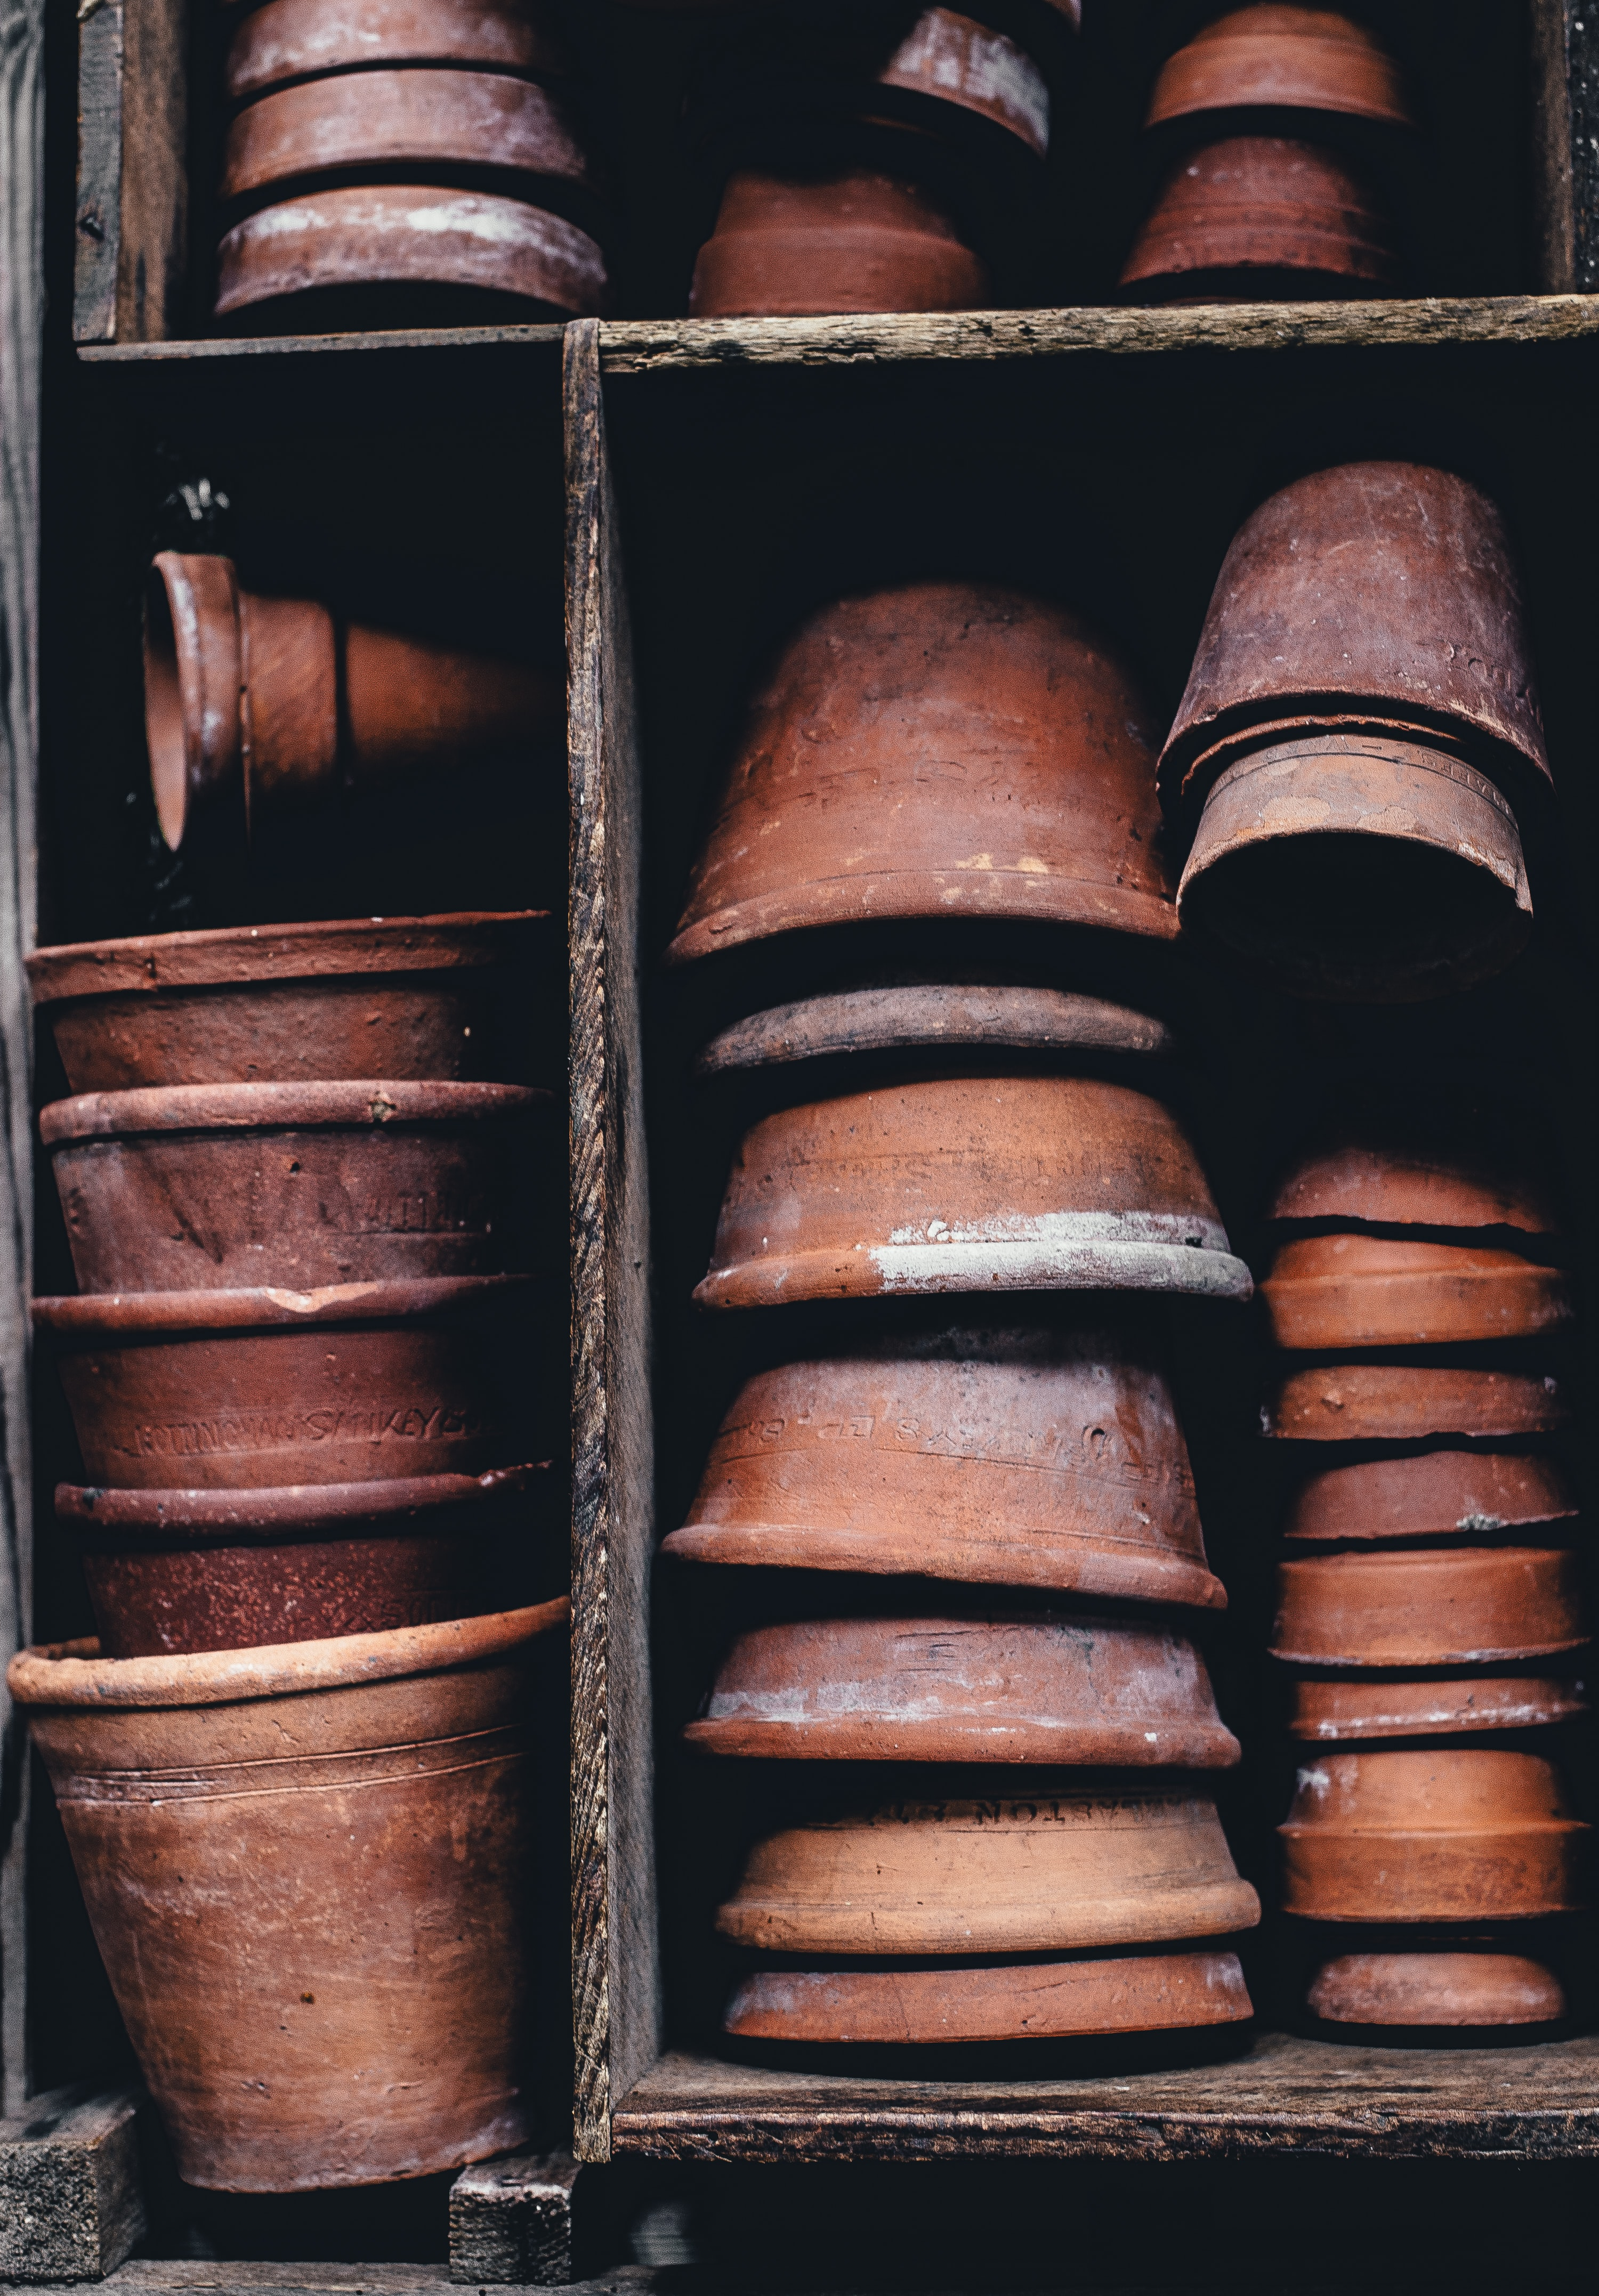 Pots stacked in a cupboard